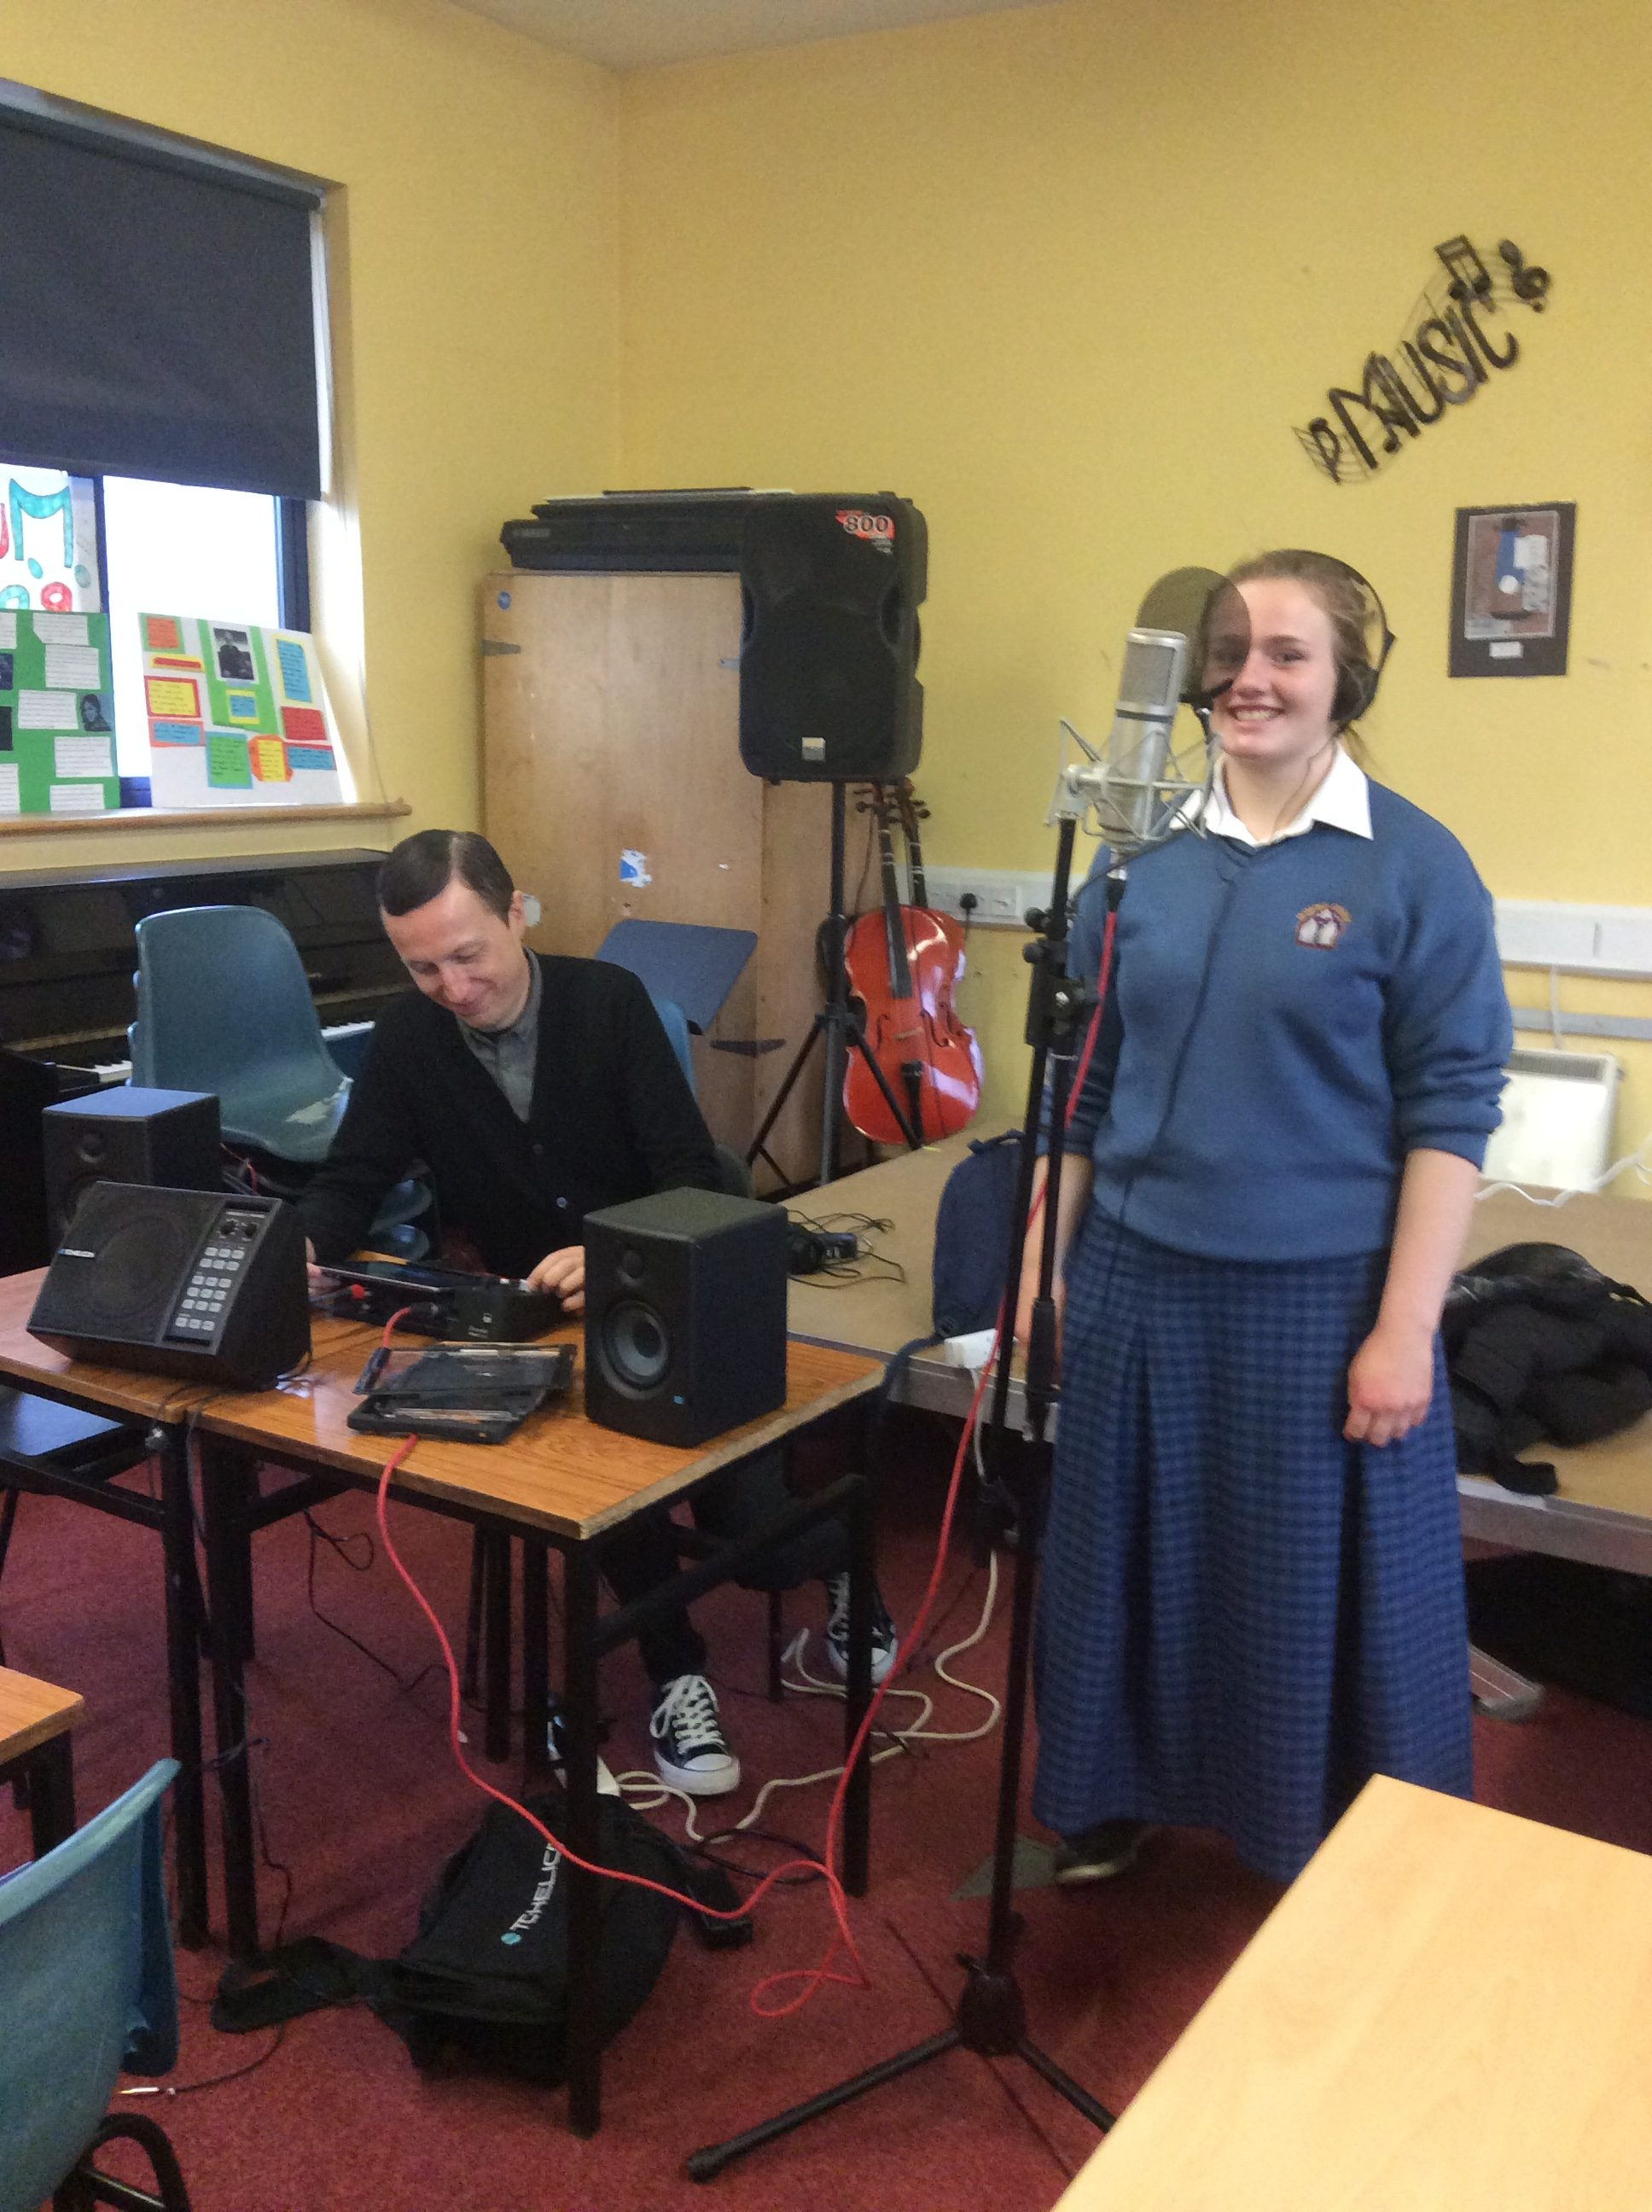 Jan 2018: Desmond College student records song composed by TY Students during Music workshop with Tony Monahan from Limerick Music Generation